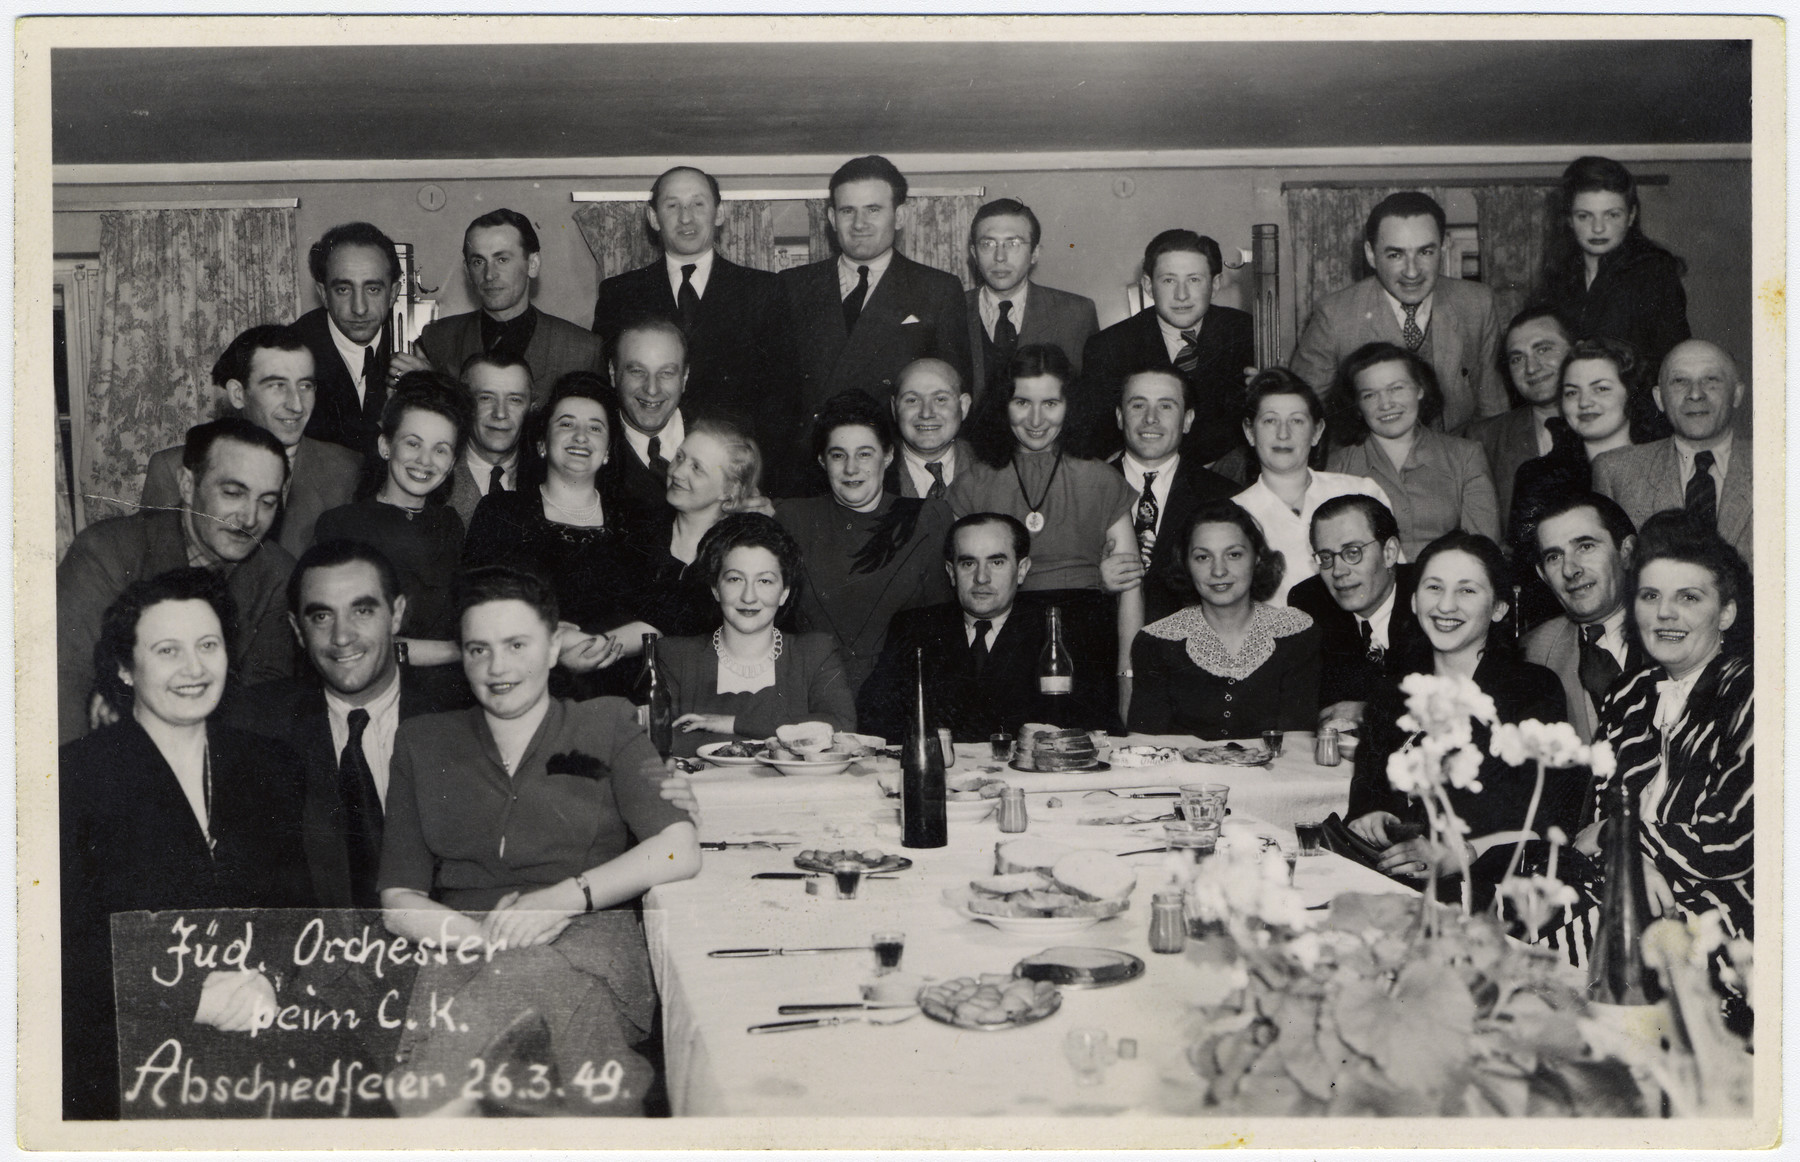 Members of the Jewish orchestra celebrate with friends at a farewell dinner.